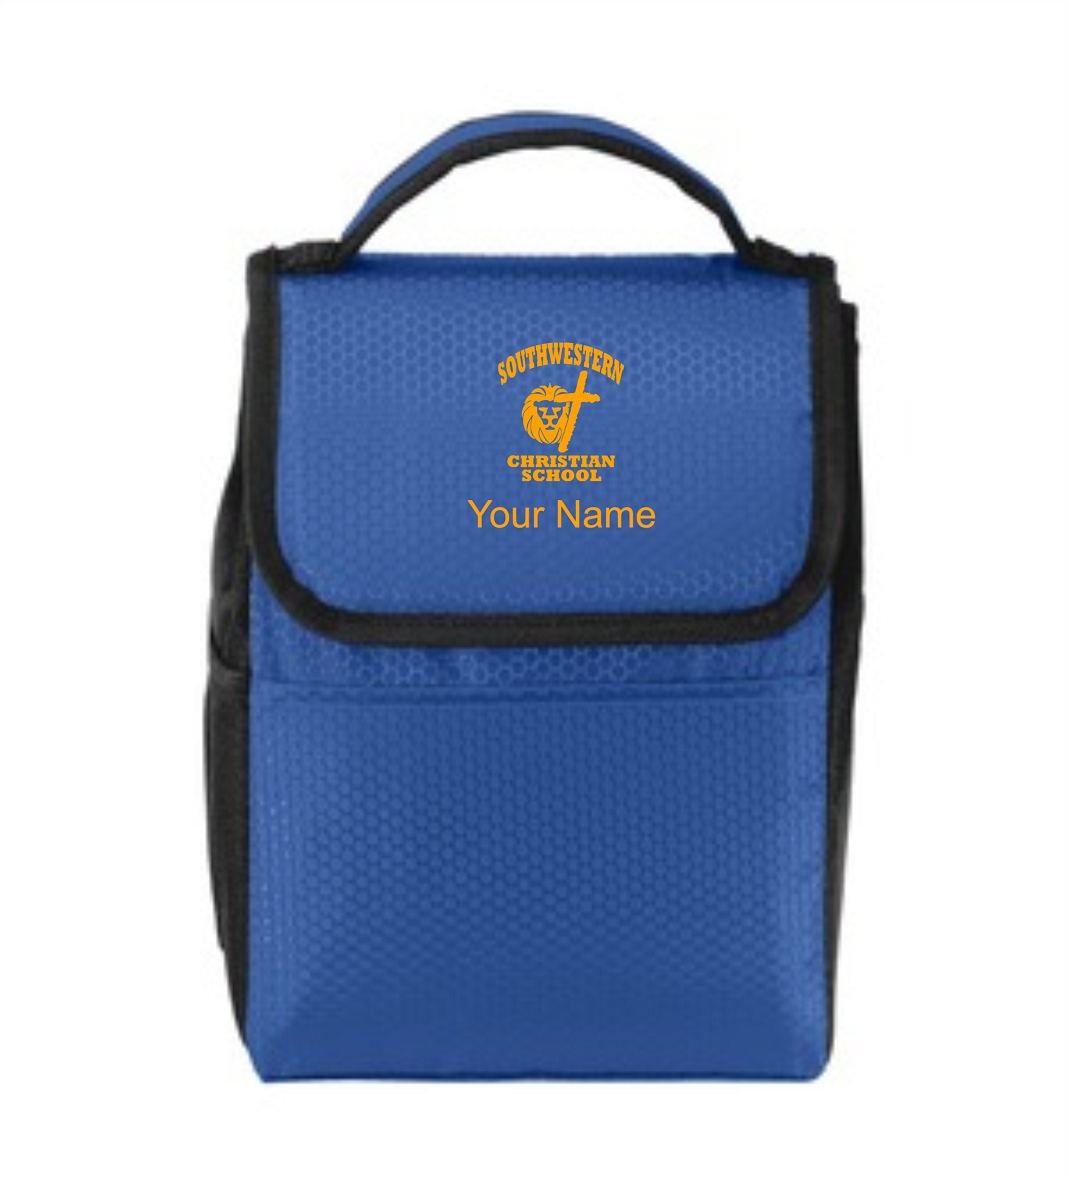 Port Authority® Lunch Bag Cooler - SWCS (Lunch Bag Colors: Twilight Blue/ Black - SWCS)